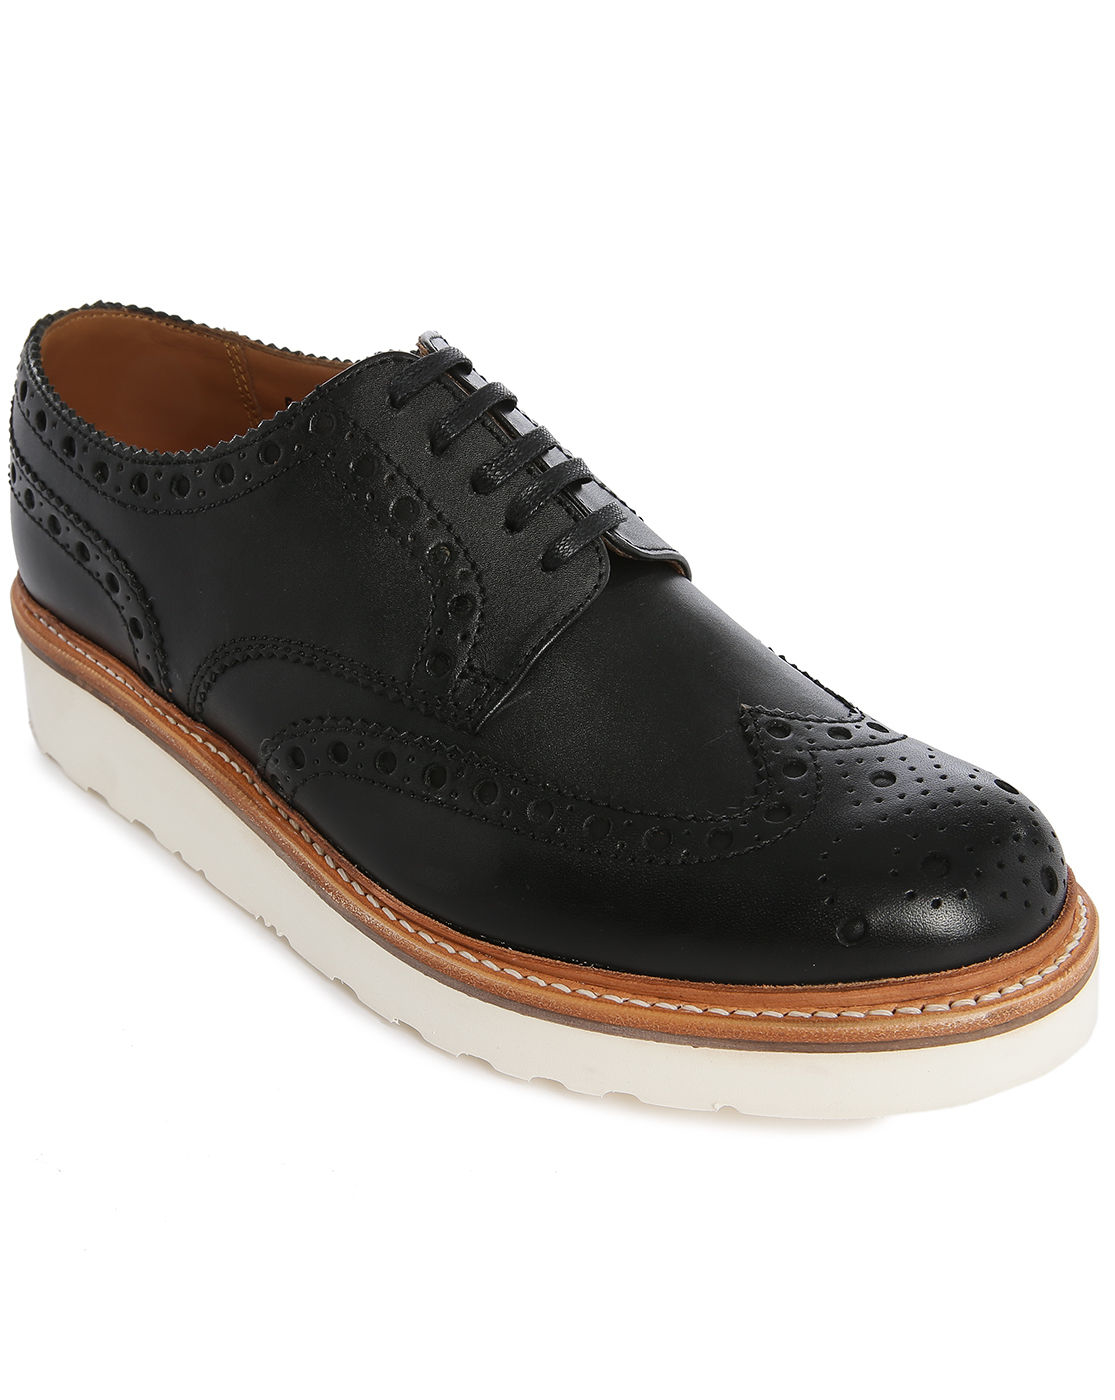 foot the coacher archie v black brogue shoes with floral